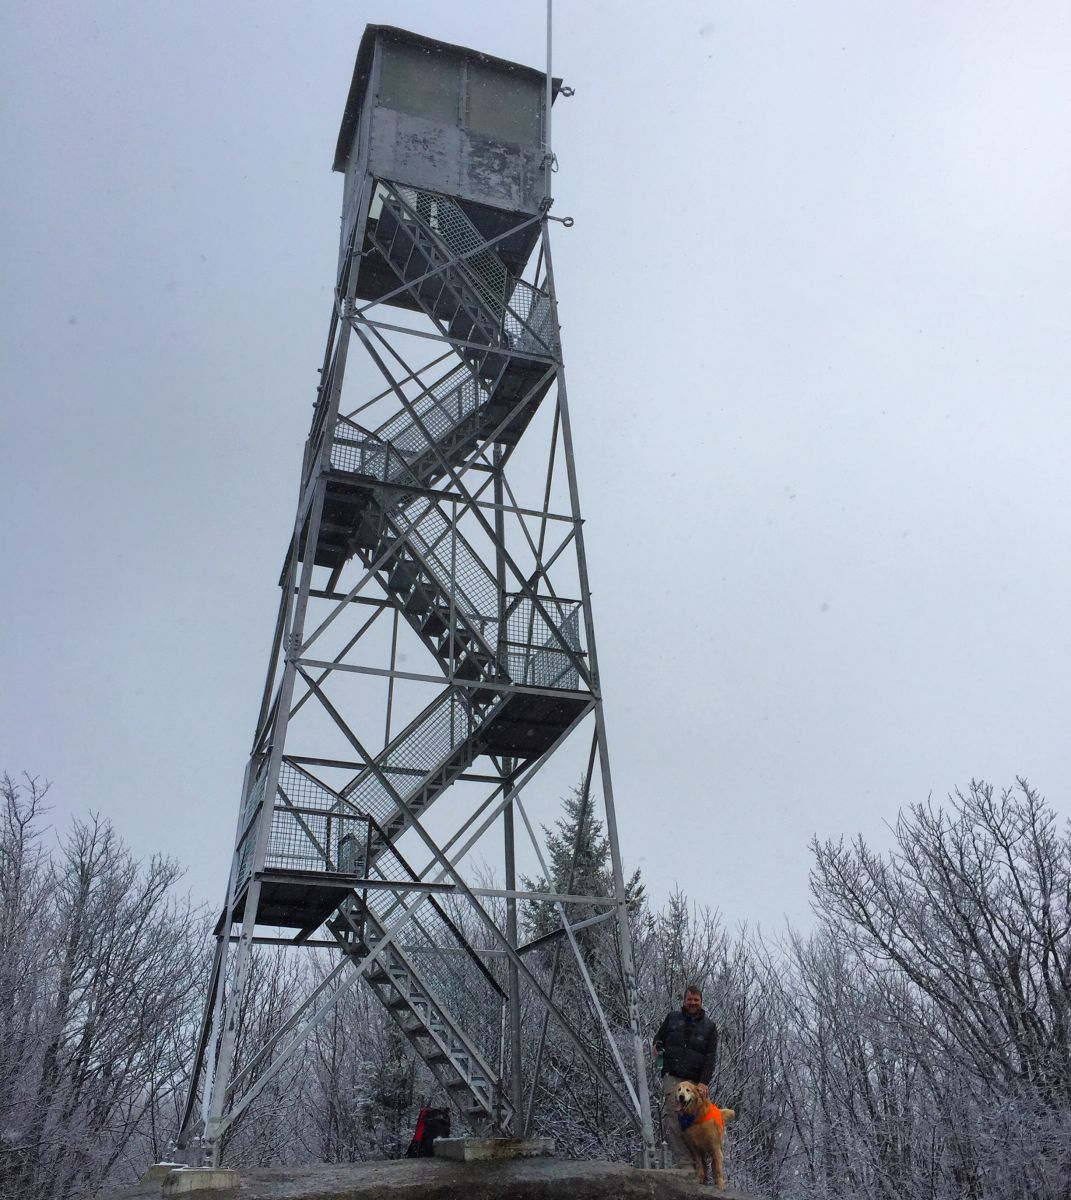 Tim and his four-legged companion, Jack, enjoy a December afternoon at the Mount Arab fire tower. Photo courtesy of Noelle Short